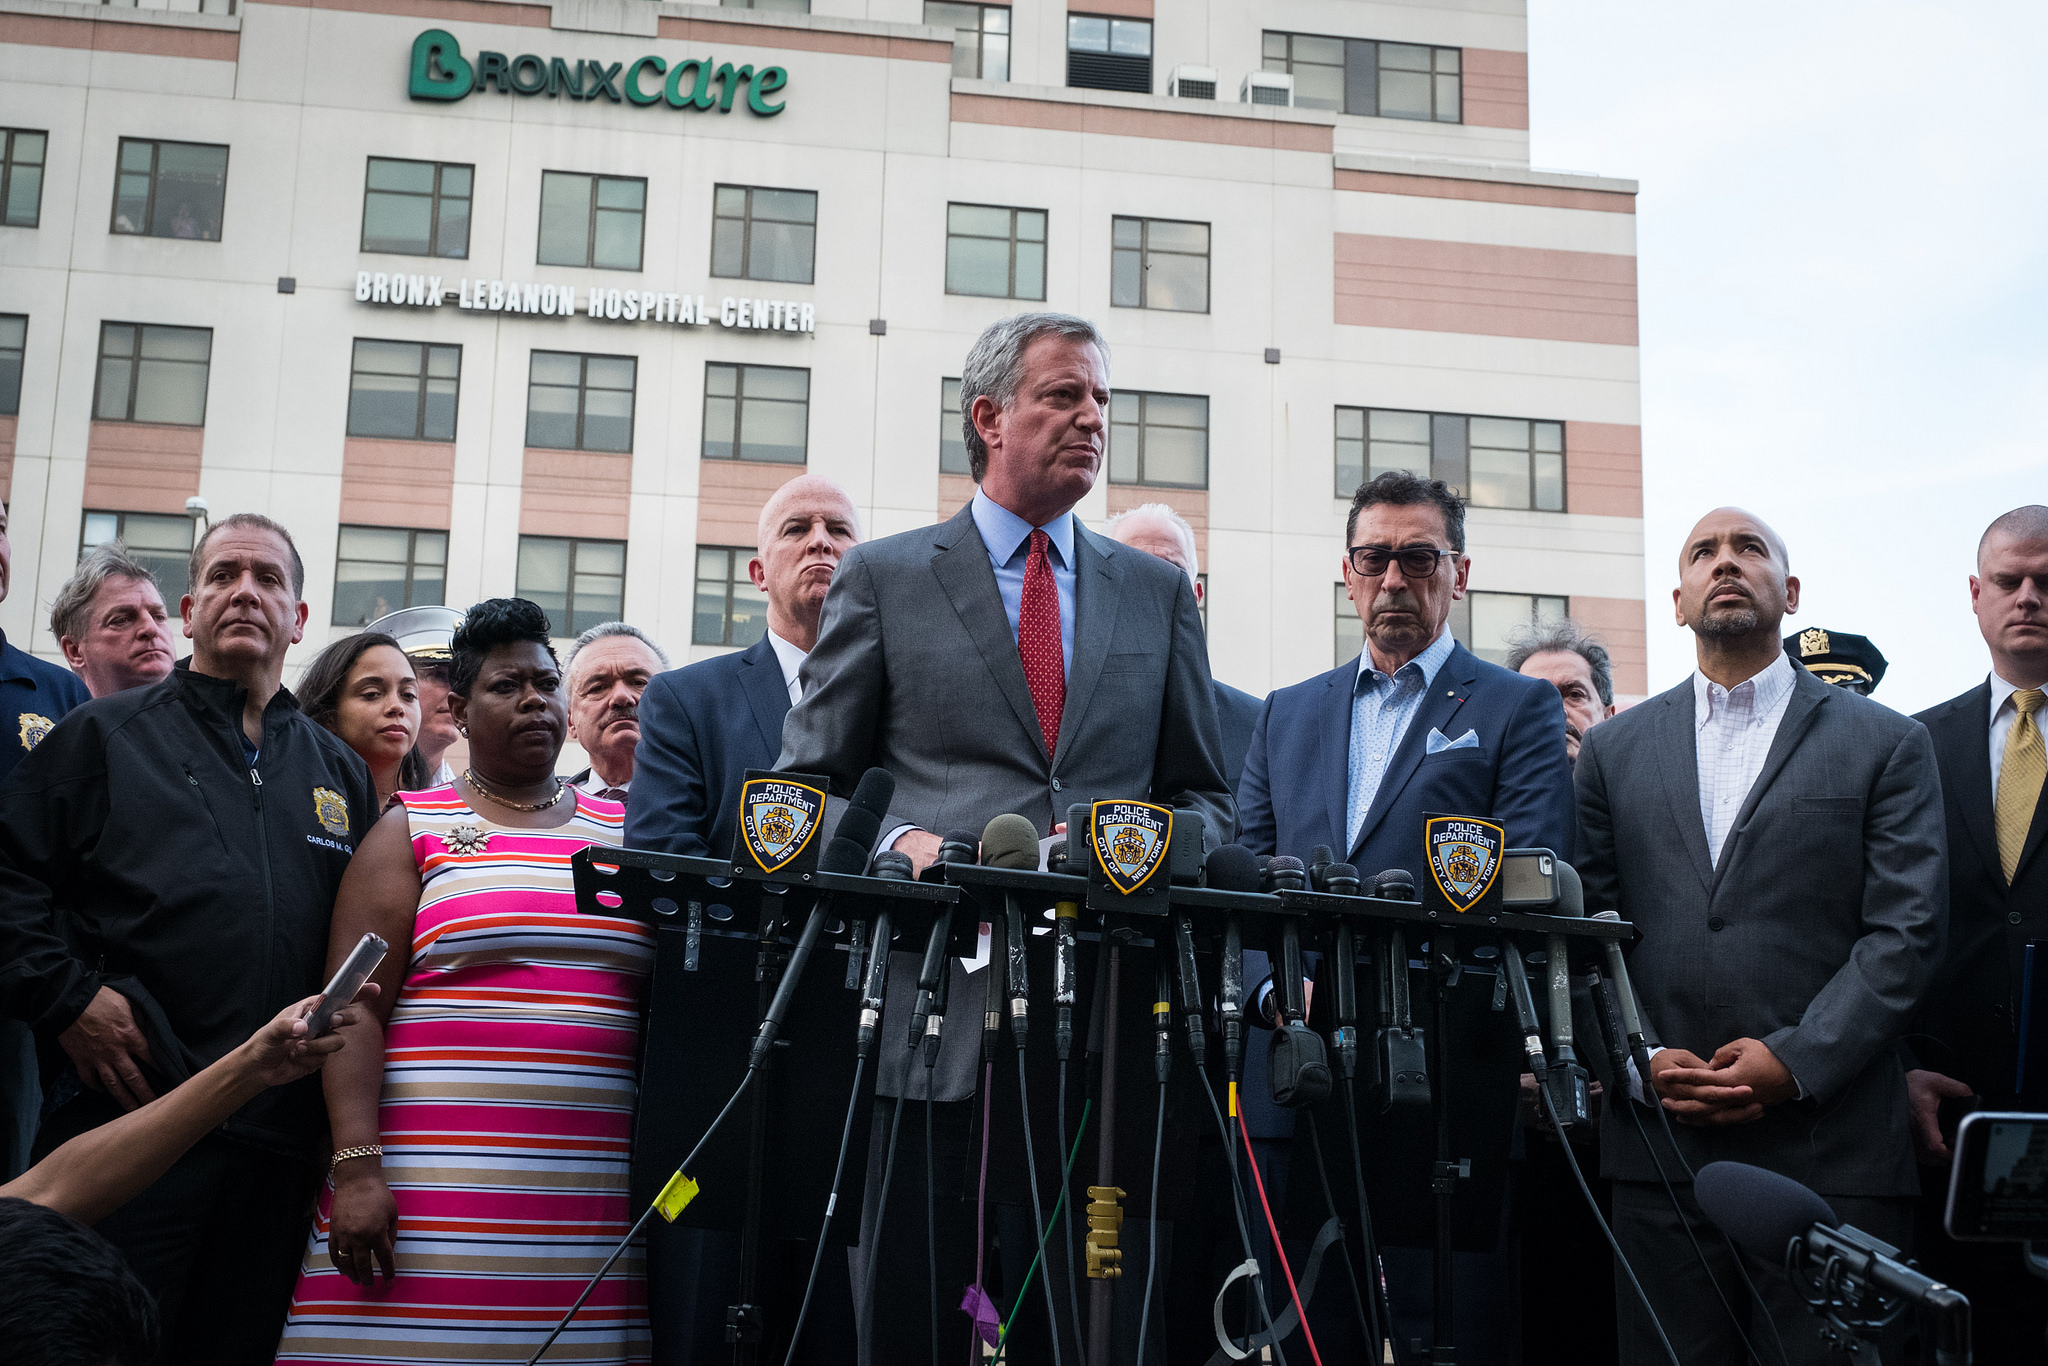 New York City Mayor de Blasio, Police Commissioner O'Neill, and Fire Commissioner Nigro respond to a shooting at Bronx Lebanon Hospital on Friday, June 30th, 2017. Edwin J. Torres/ Mayoral Photography Office.